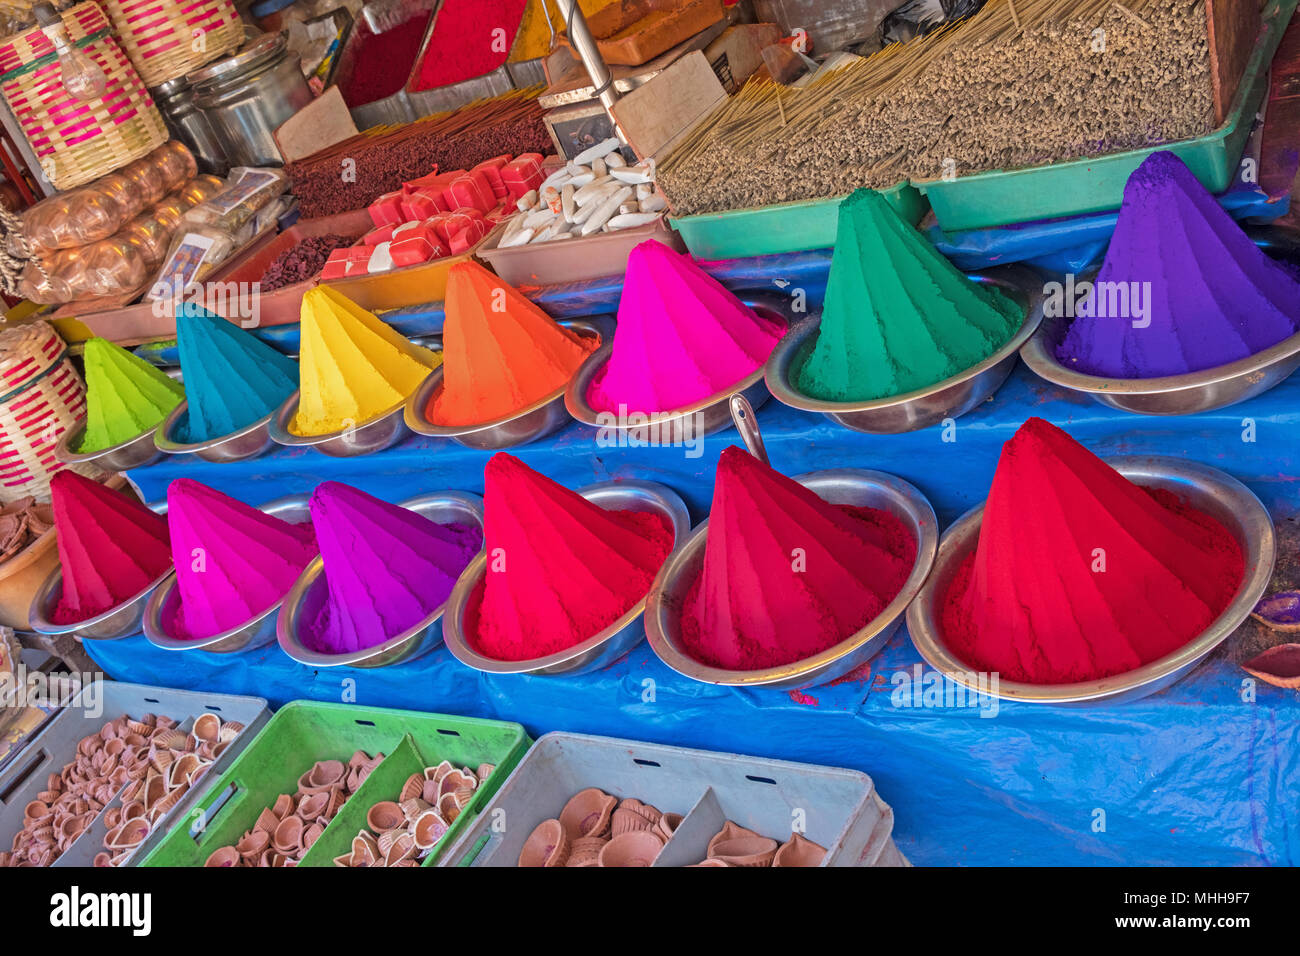 Rangoli powder, incense and joss sticks on display in an Indian market. - Stock Image